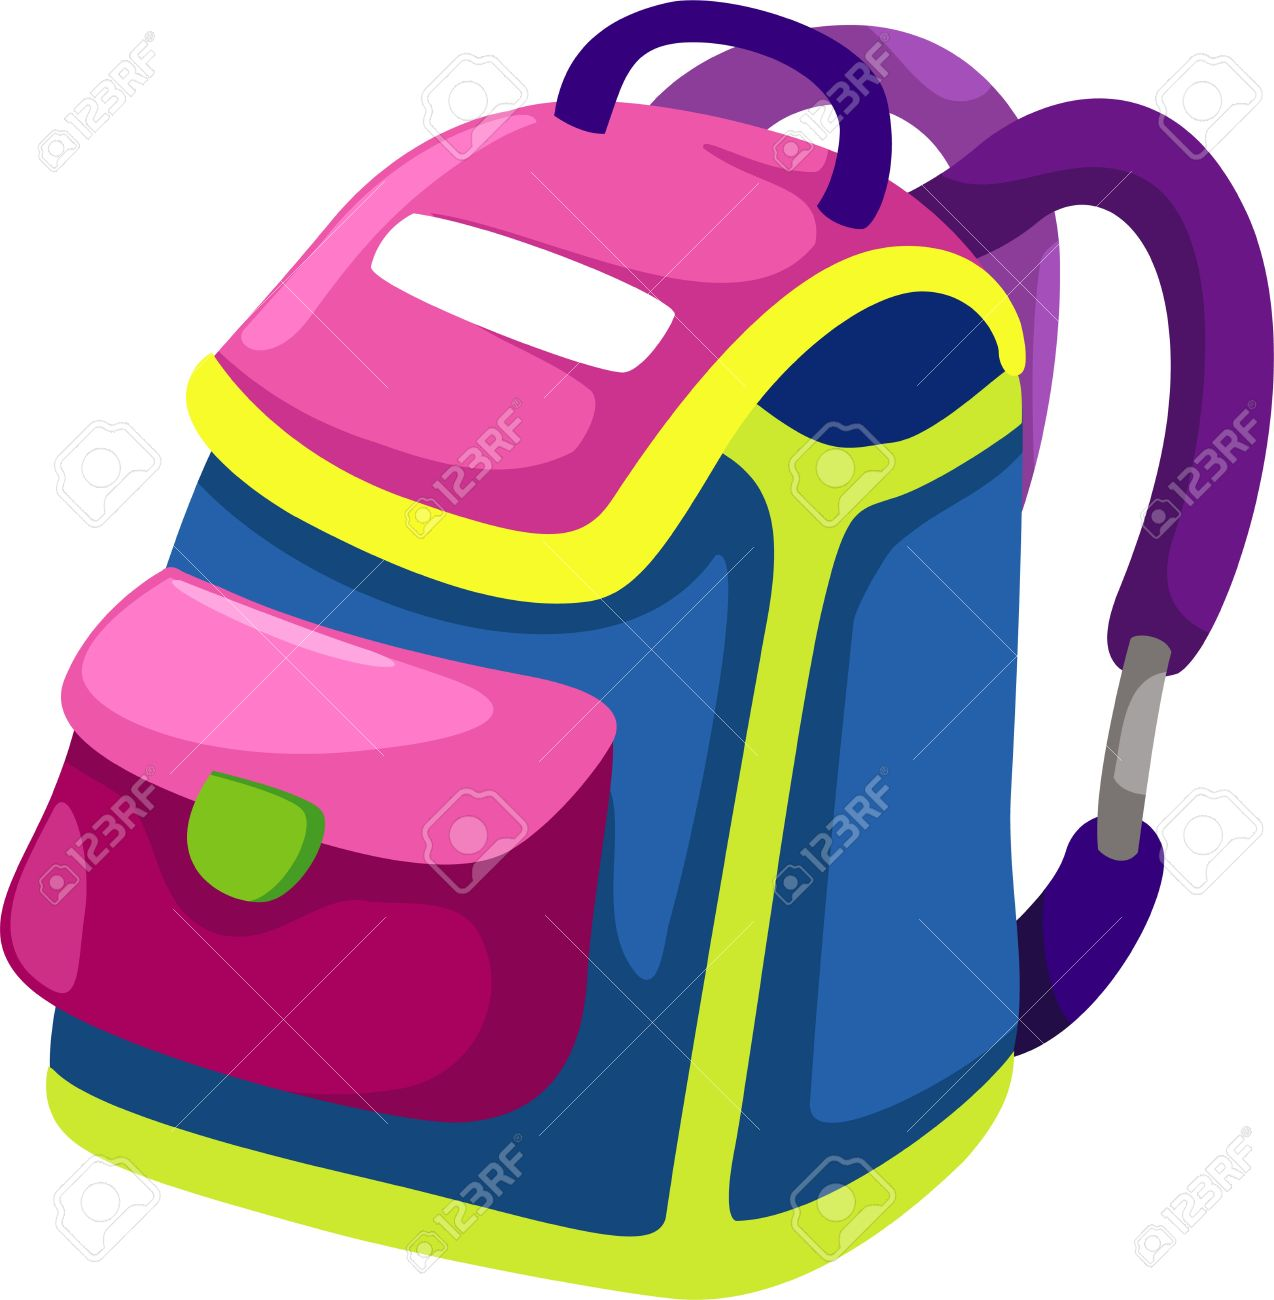 Bag clipart 4 » Clipart Station.